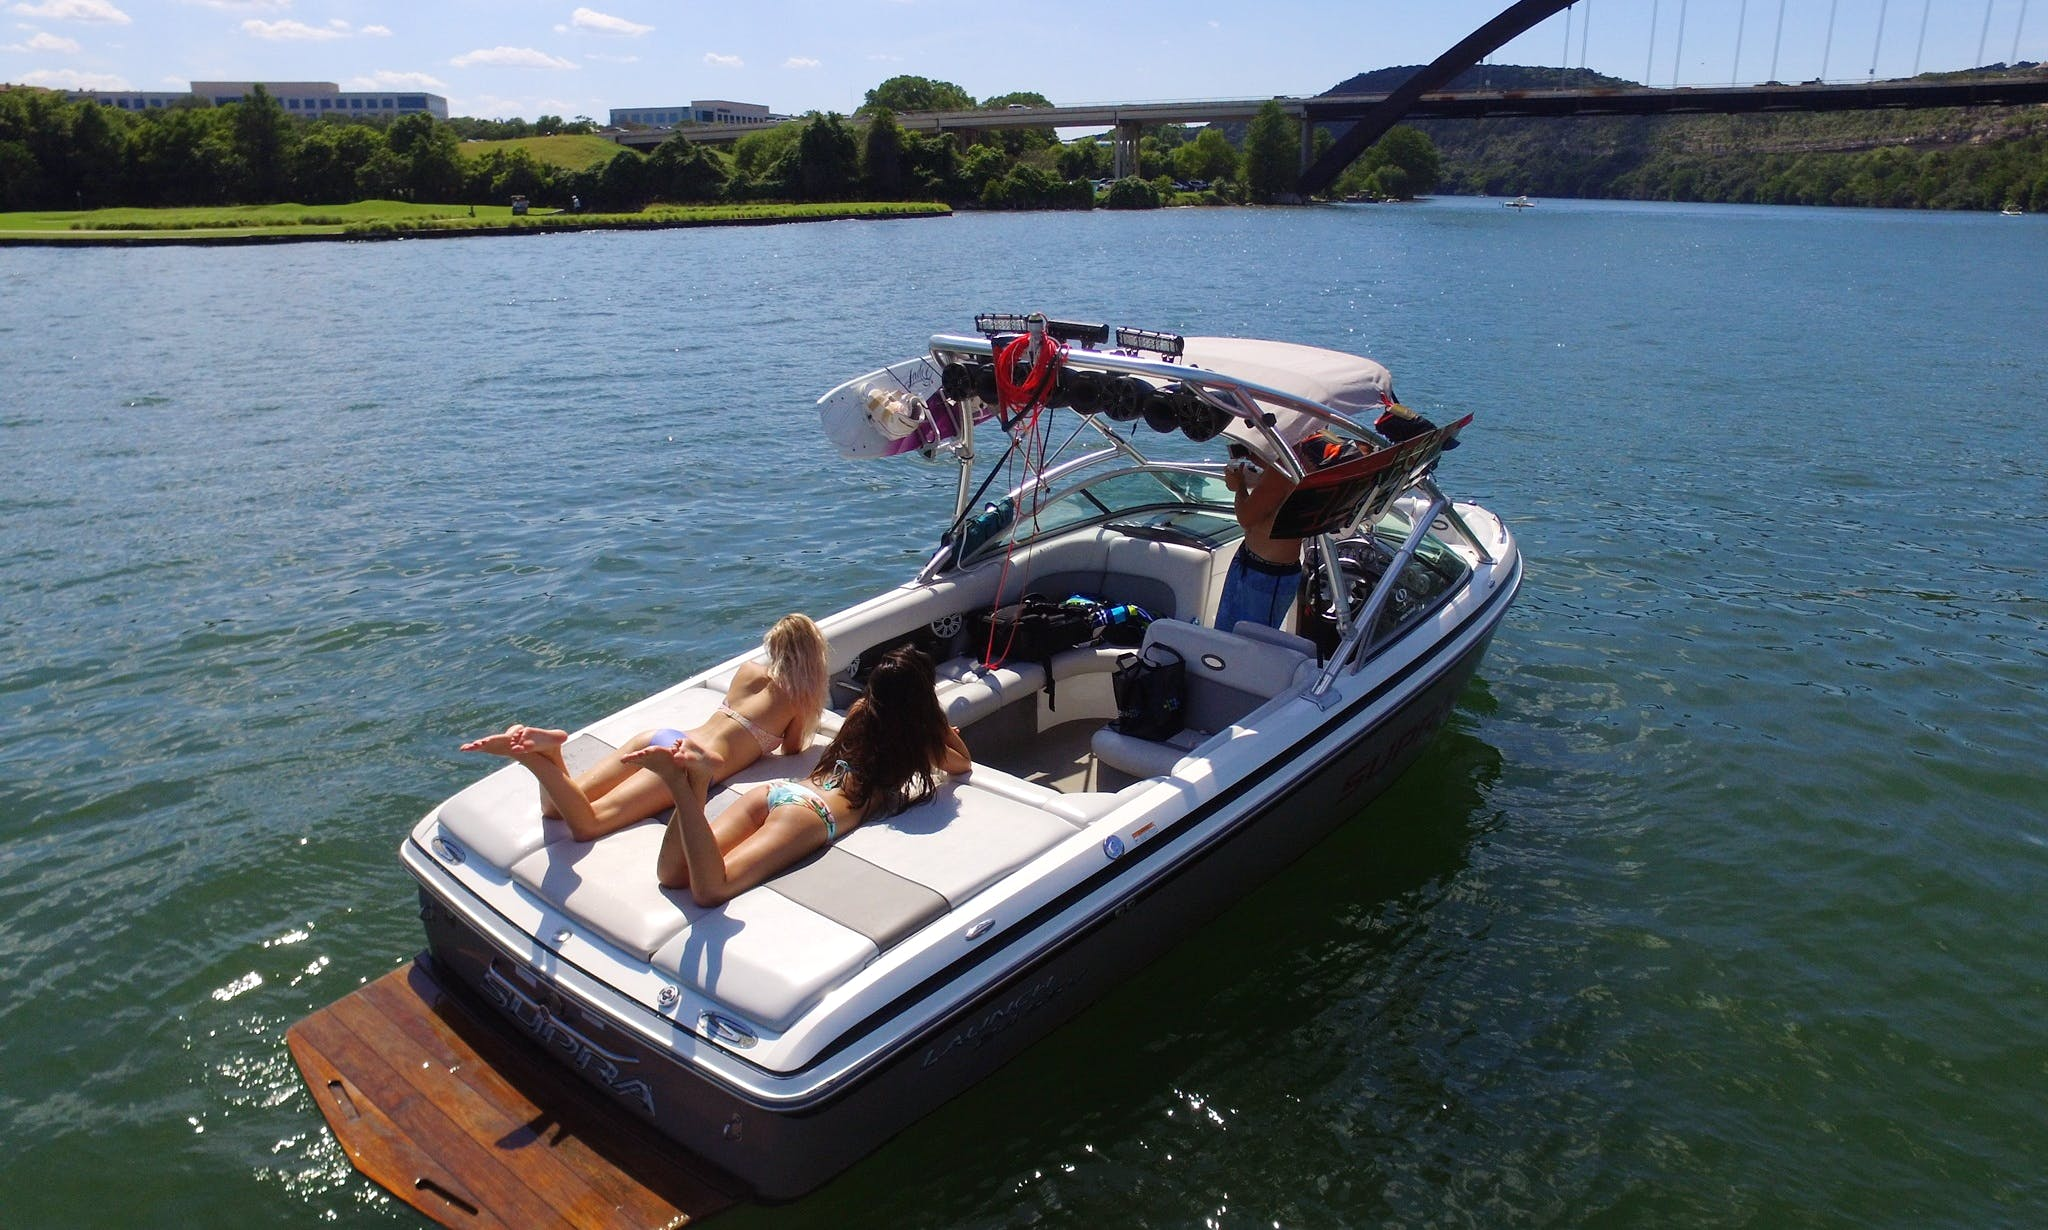 24ft Supra Wakeboard/ Surf Boat - Supra 24SSV Gravity Games Edition (Multiple boats available!)